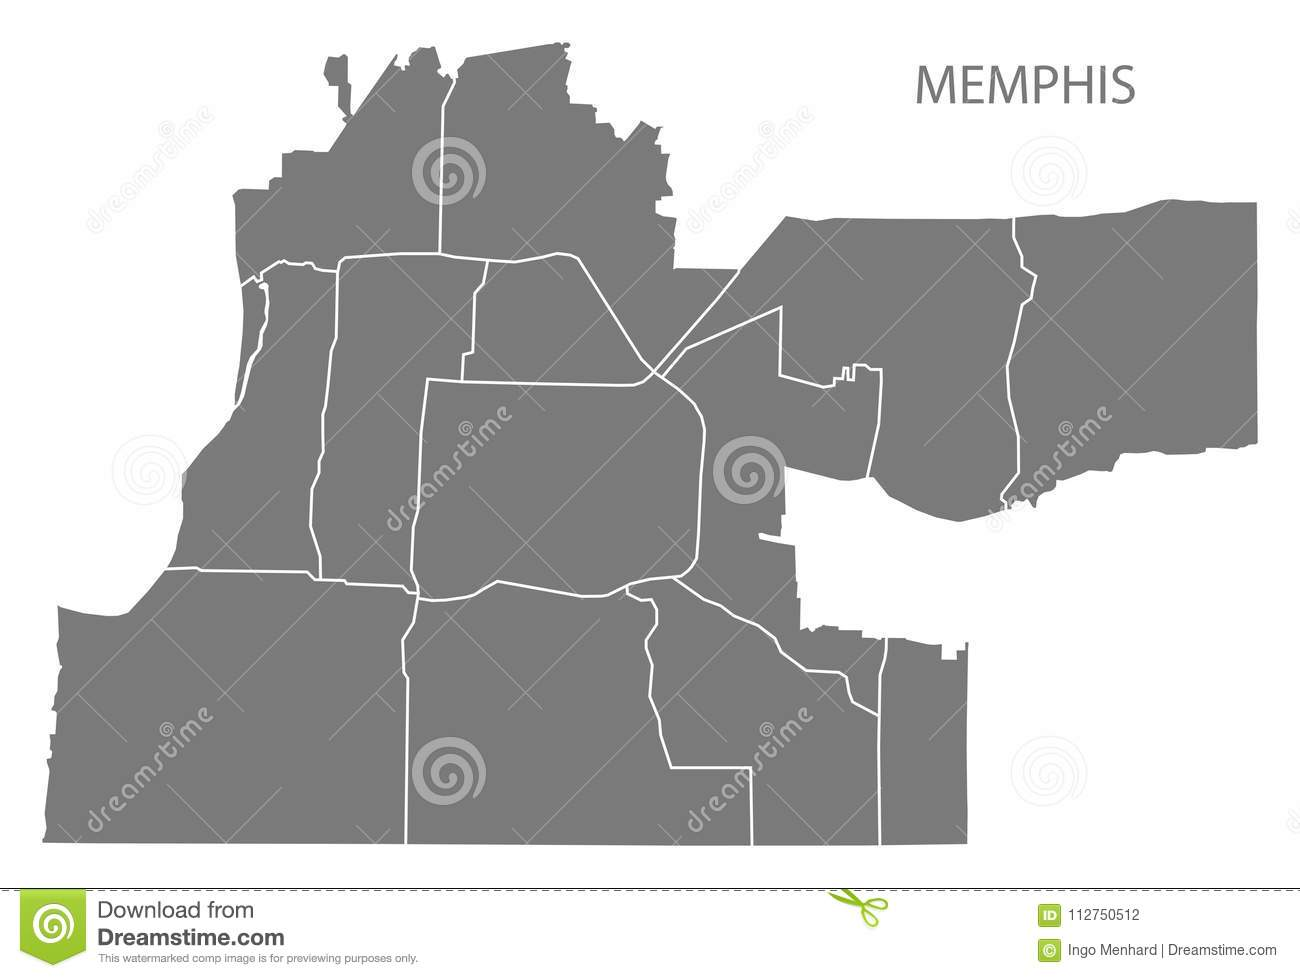 Memphis Tennessee City Map With Neighborhoods Grey Illustration ...